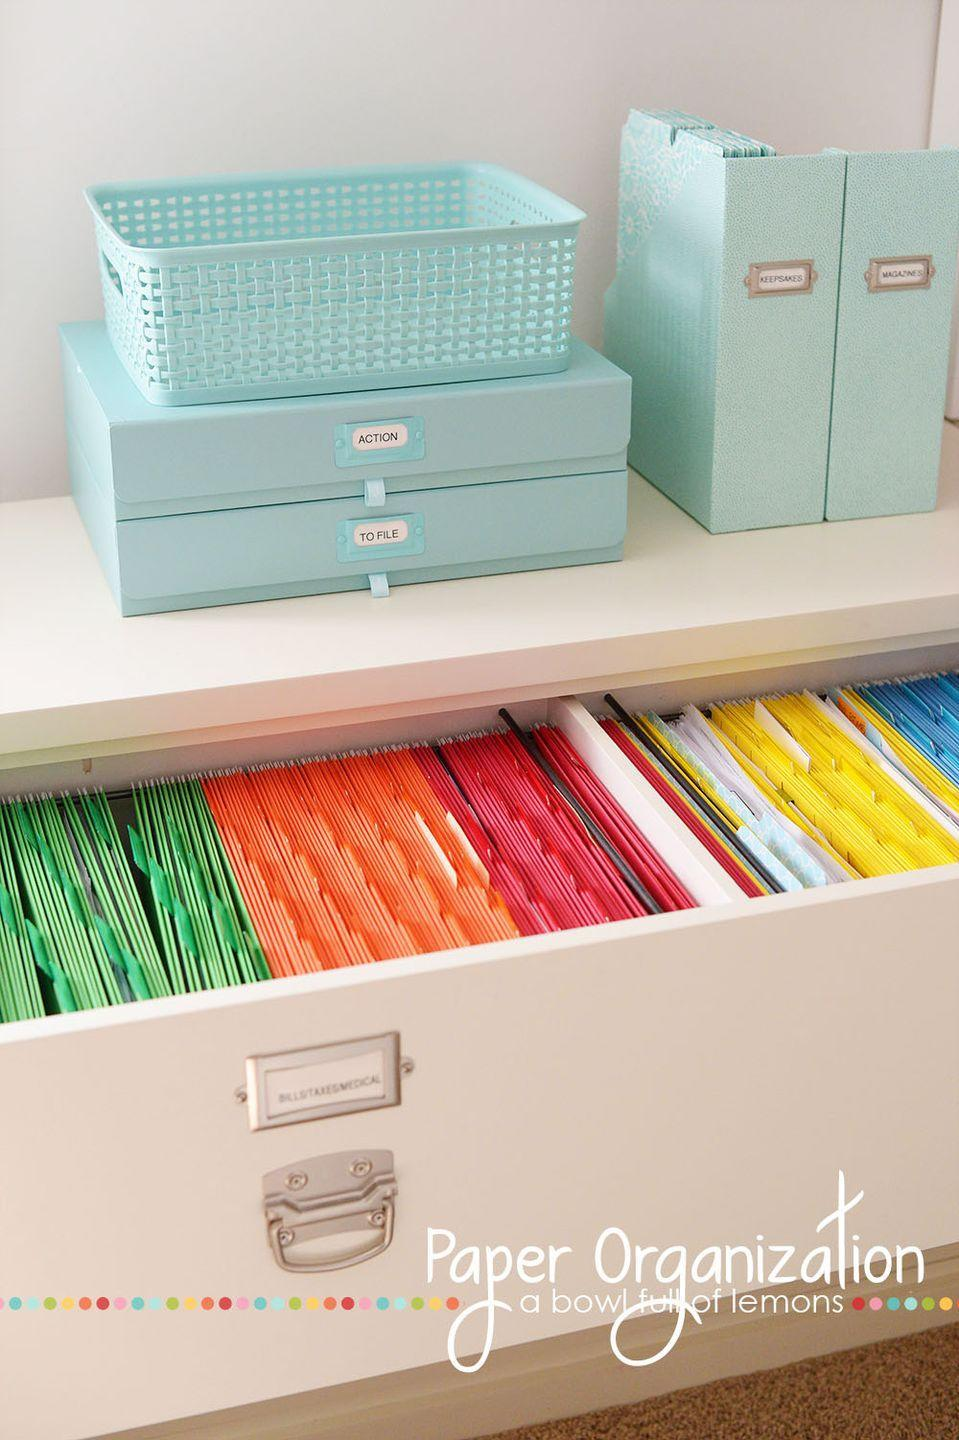 """<p>Manilla file folders have nothing on this pristine color-coded set. Finding important papers barely requires reading labels — just a glance toward the right color to find exactly what you need fast. </p><p><em><em><a href=""""http://www.abowlfulloflemons.net/2014/02/paper-organization.html"""" rel=""""nofollow noopener"""" target=""""_blank"""" data-ylk=""""slk:Get the tutorial at A Bowl Full of Lemons »"""" class=""""link rapid-noclick-resp"""">Get the tutorial at A Bowl Full of Lemons »</a></em></em></p><p><strong>RELATED: </strong><a href=""""https://www.goodhousekeeping.com/home/organizing/g3351/how-to-organize-your-paperwork/"""" rel=""""nofollow noopener"""" target=""""_blank"""" data-ylk=""""slk:How to Organize Your Paperwork"""" class=""""link rapid-noclick-resp"""">How to Organize Your Paperwork </a><br></p>"""